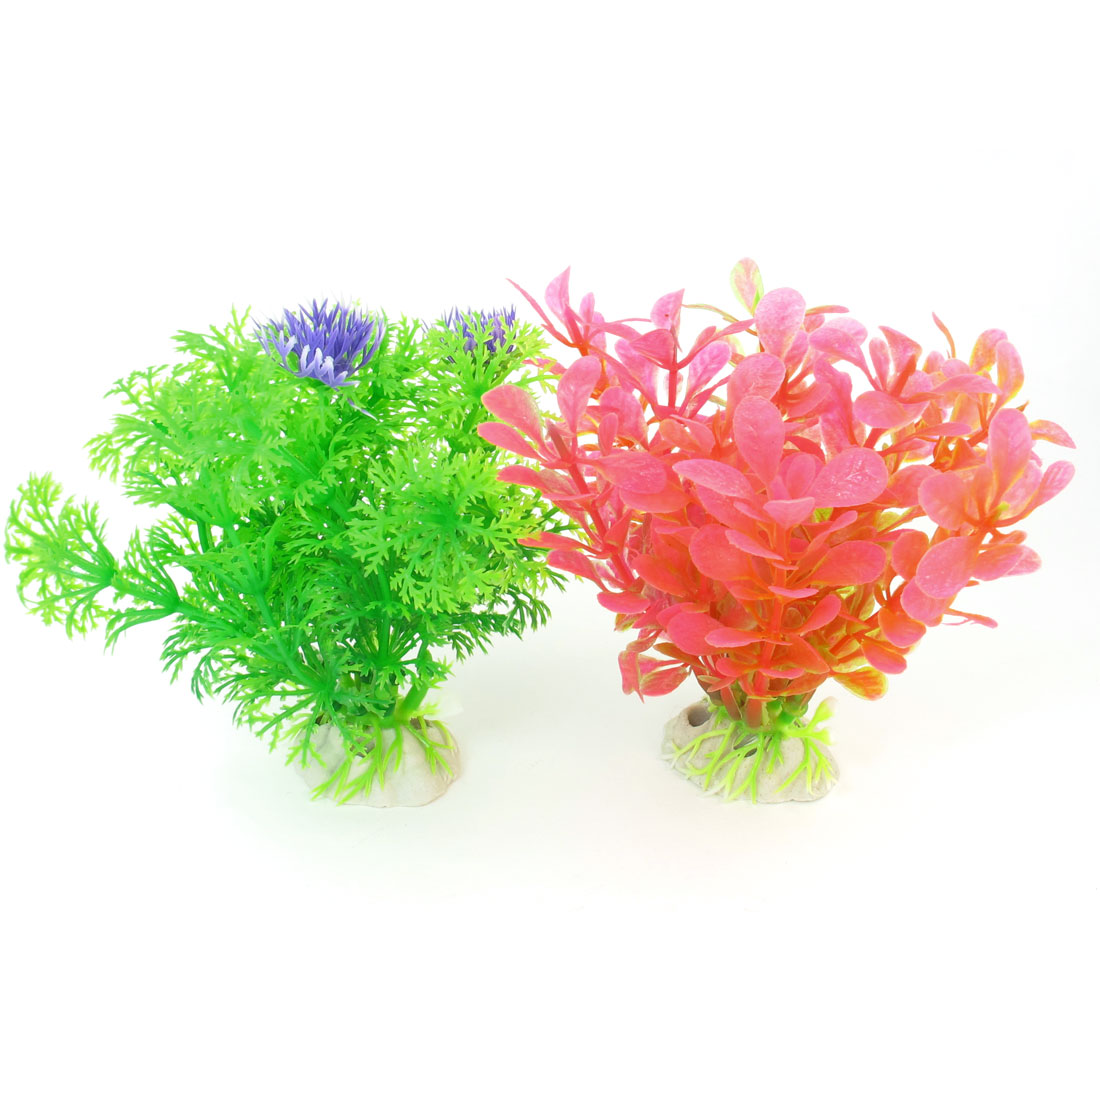 "2 Pcs 4.1"" High Light Green Pink Emulational Aquarium Fish Tank Plants Decor"